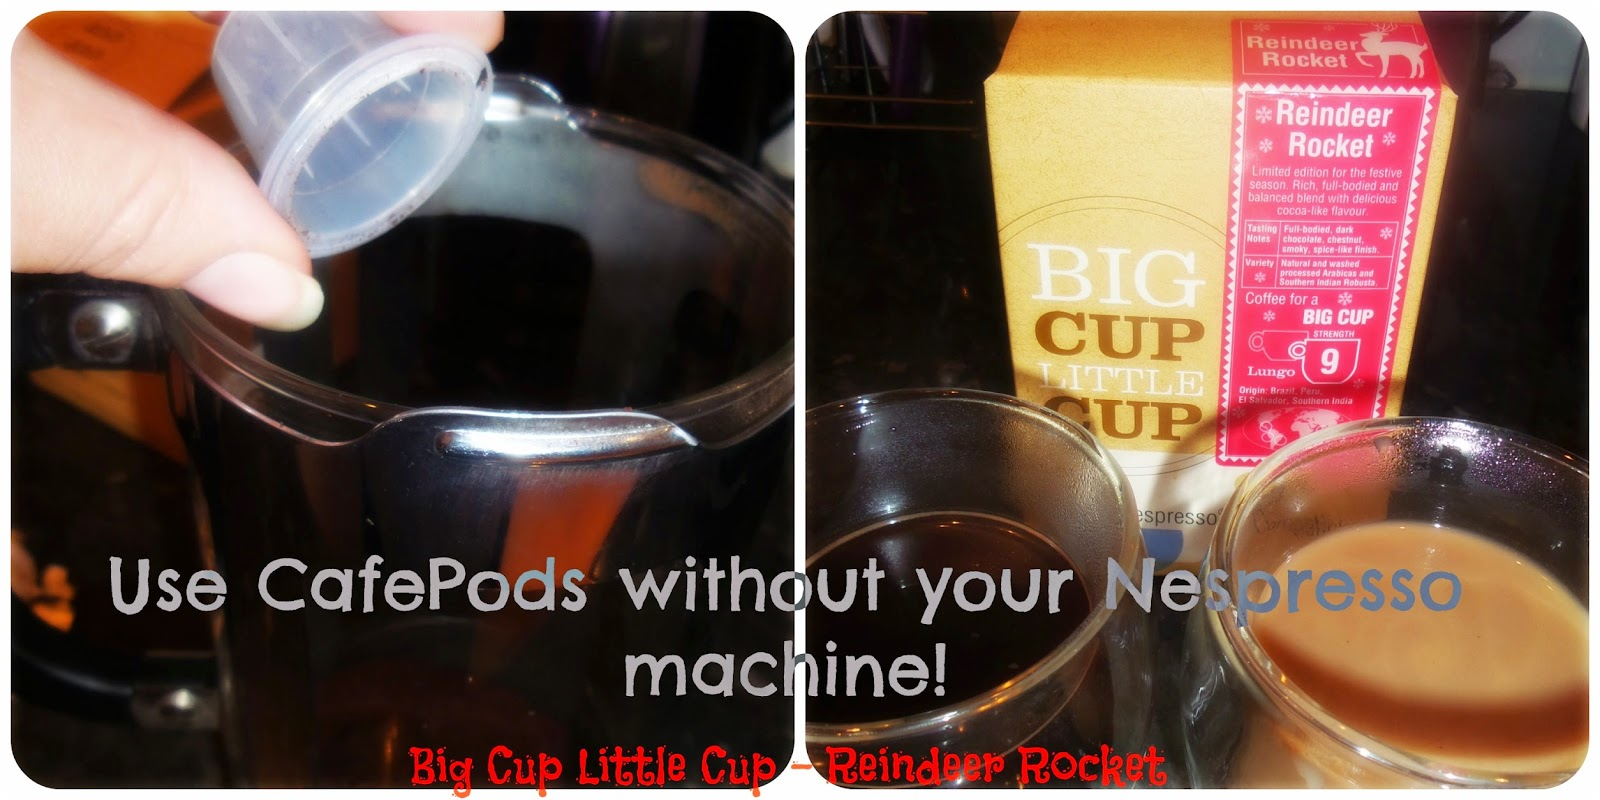 Use cafepods without nespresso machine, using cafepods